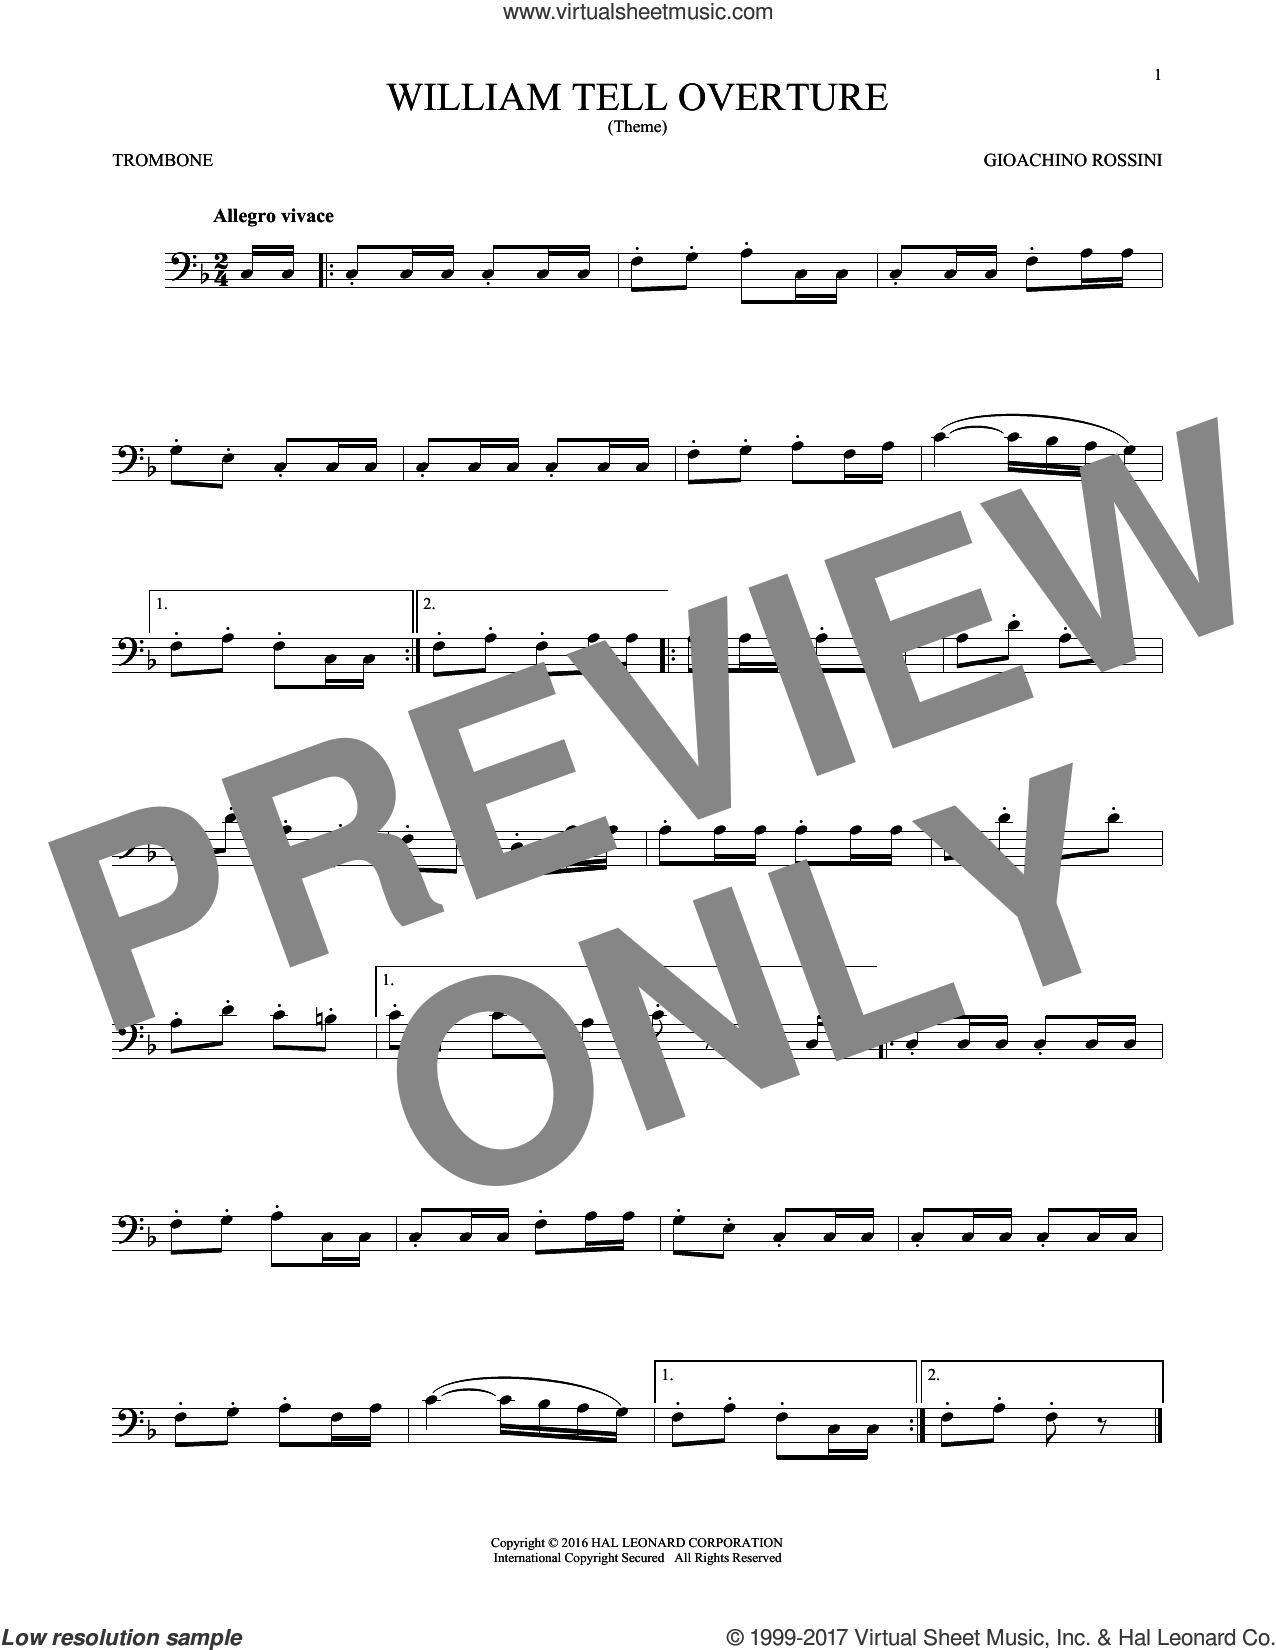 William Tell Overture sheet music for trombone solo by Rossini, Gioacchino, classical score, intermediate skill level